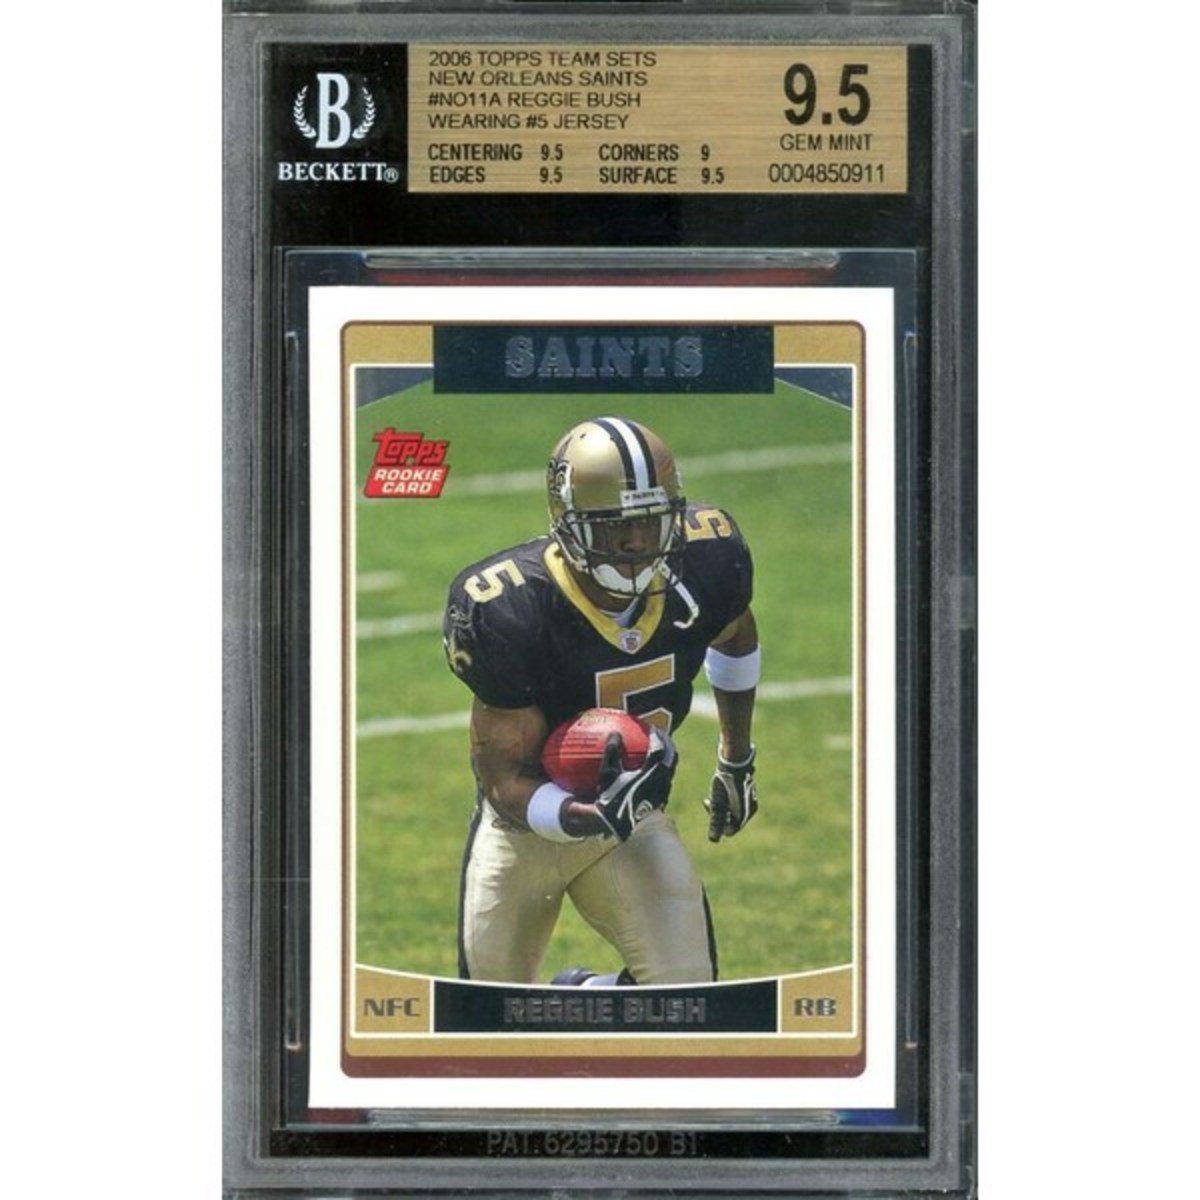 Reggie Bush sports the #5 in his 2006 Topps Rookie Card.